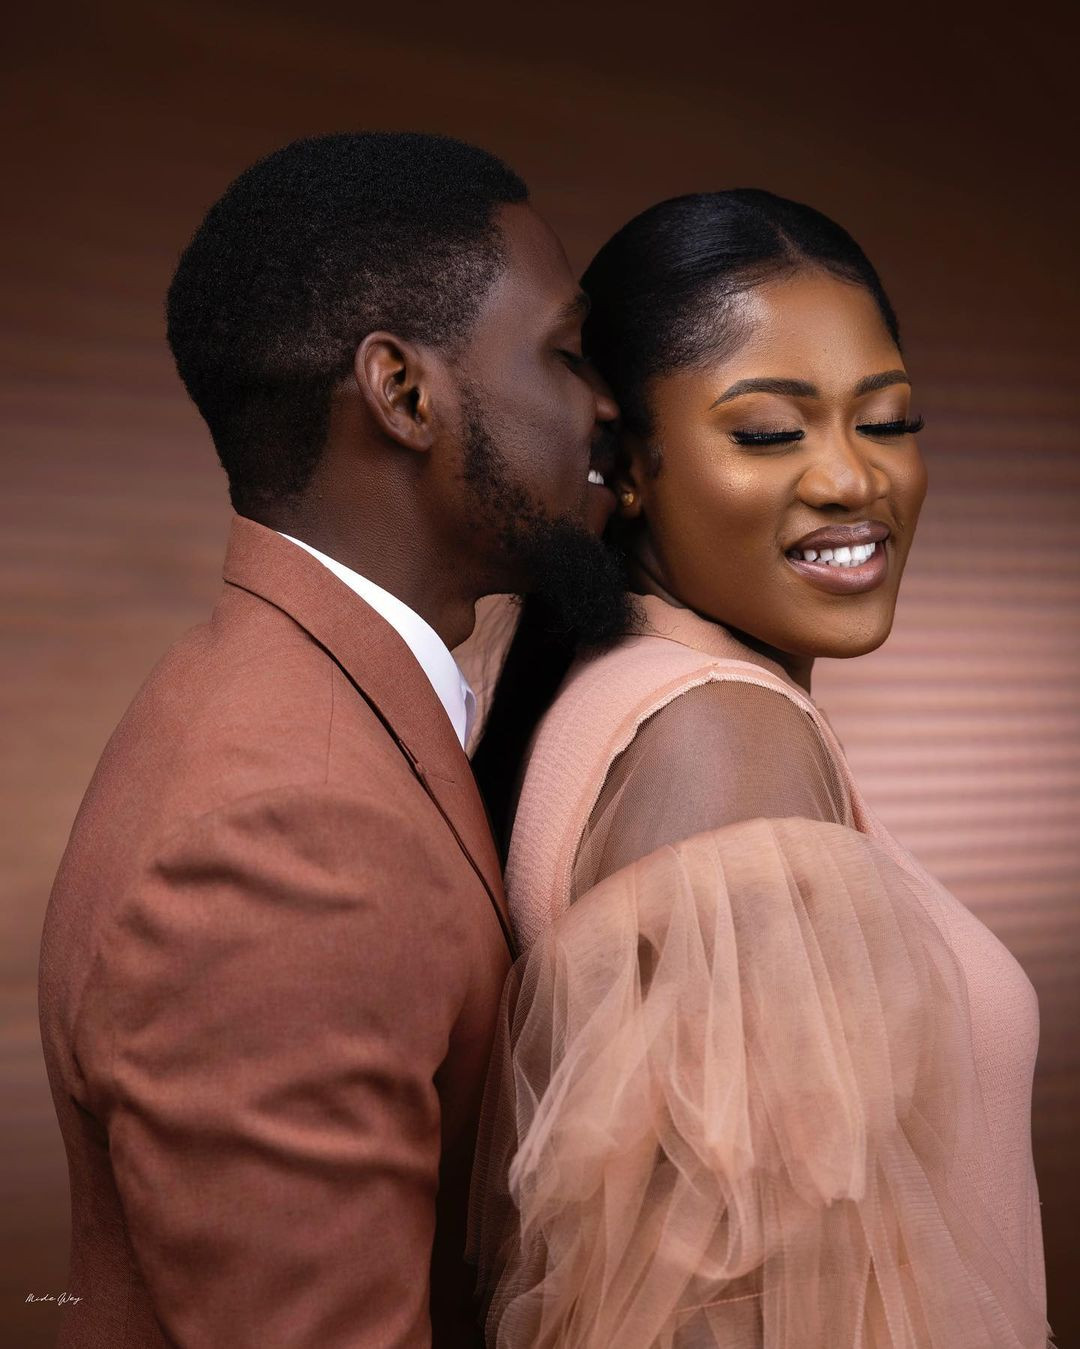 61209c6d60756 - ''I prayed and you came'' Tobi Bakare, gushes over his bride-to-be as he shares more pre-wedding photos